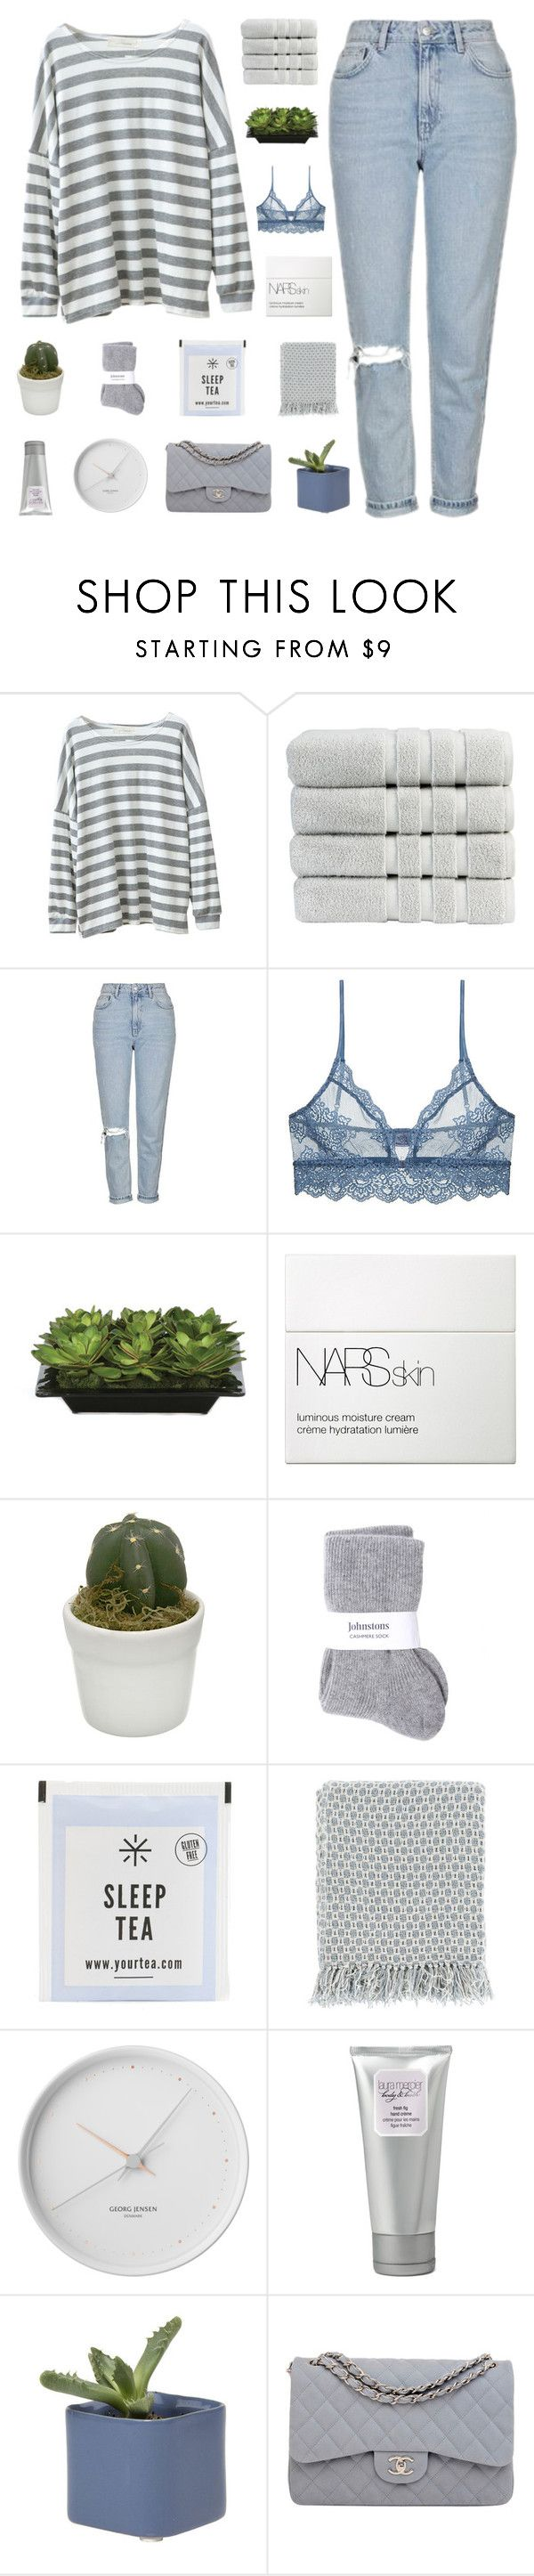 """""""we got us"""" by my-pink-wings ❤ liked on Polyvore featuring Chicnova Fashion, Christy, Topshop, Only Hearts, Lux-Art Silks, NARS Cosmetics, Johnstons, Surya, Georg Jensen and Laura Mercier"""